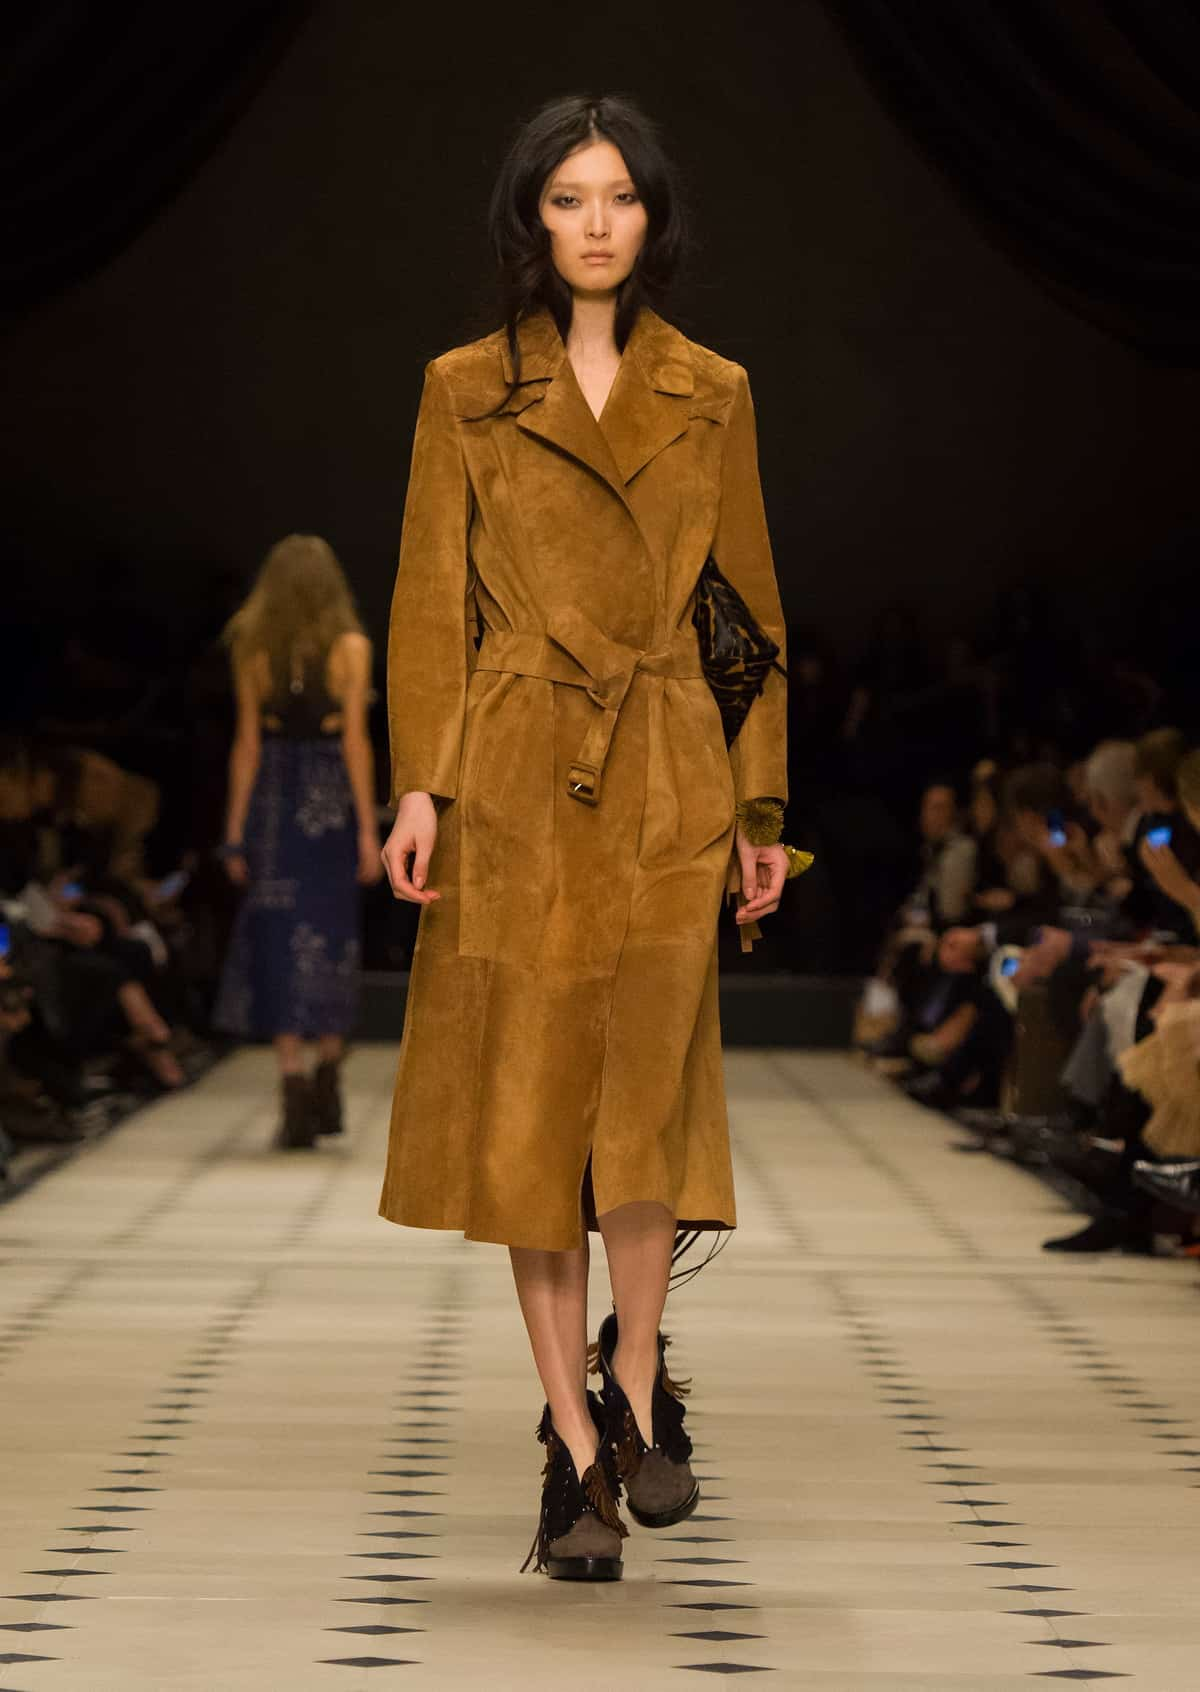 TREND Alert: SUEDE Trench Coats – The Fashion Tag Blog